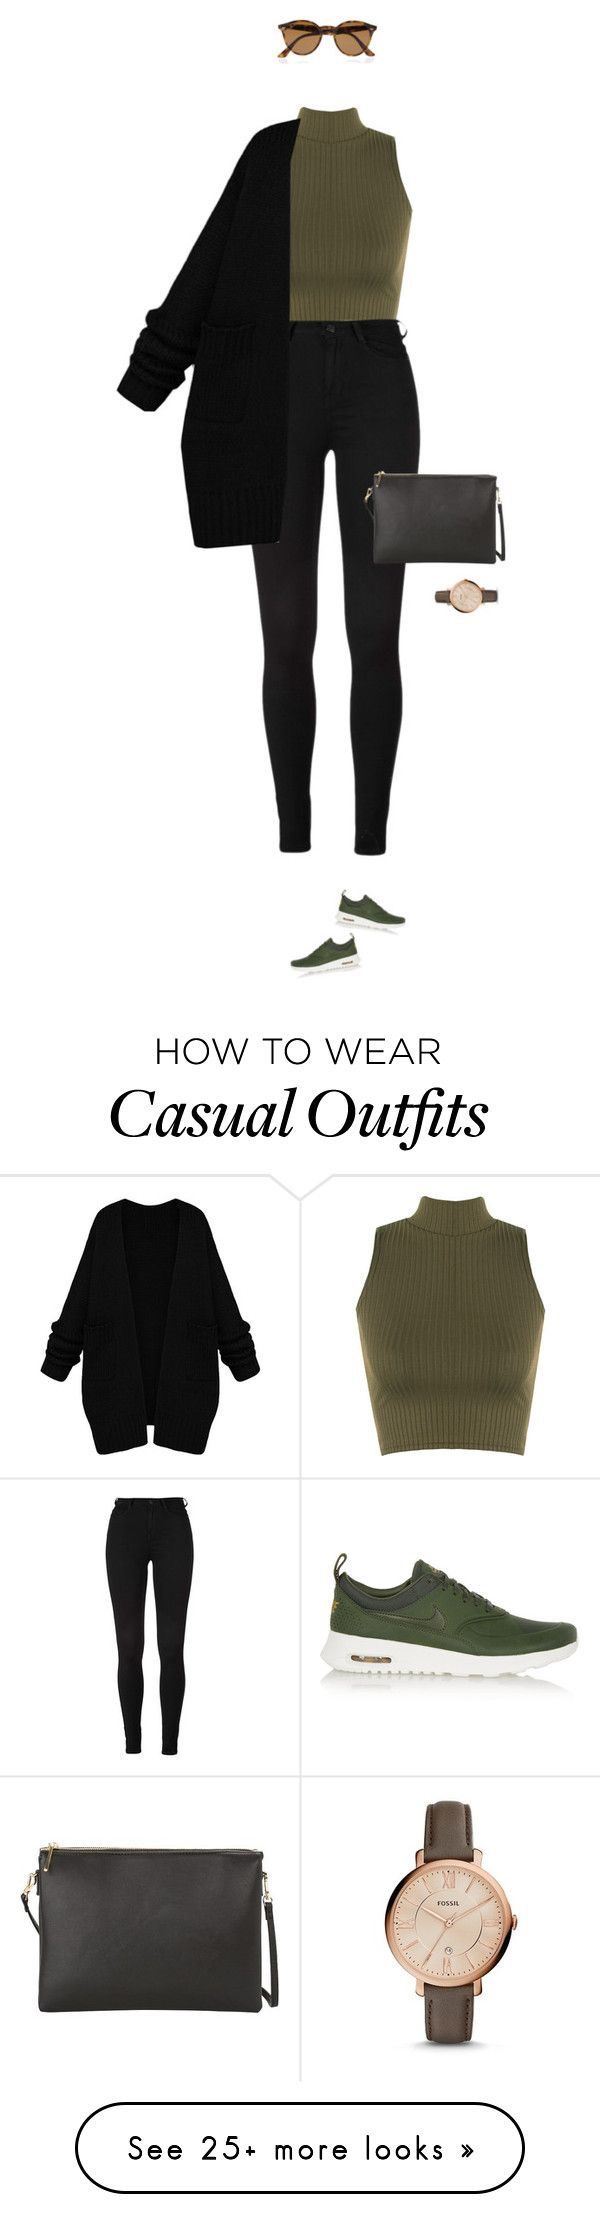 Pin by Anna Bohannan on Style   Sneakers fashion outfits ...